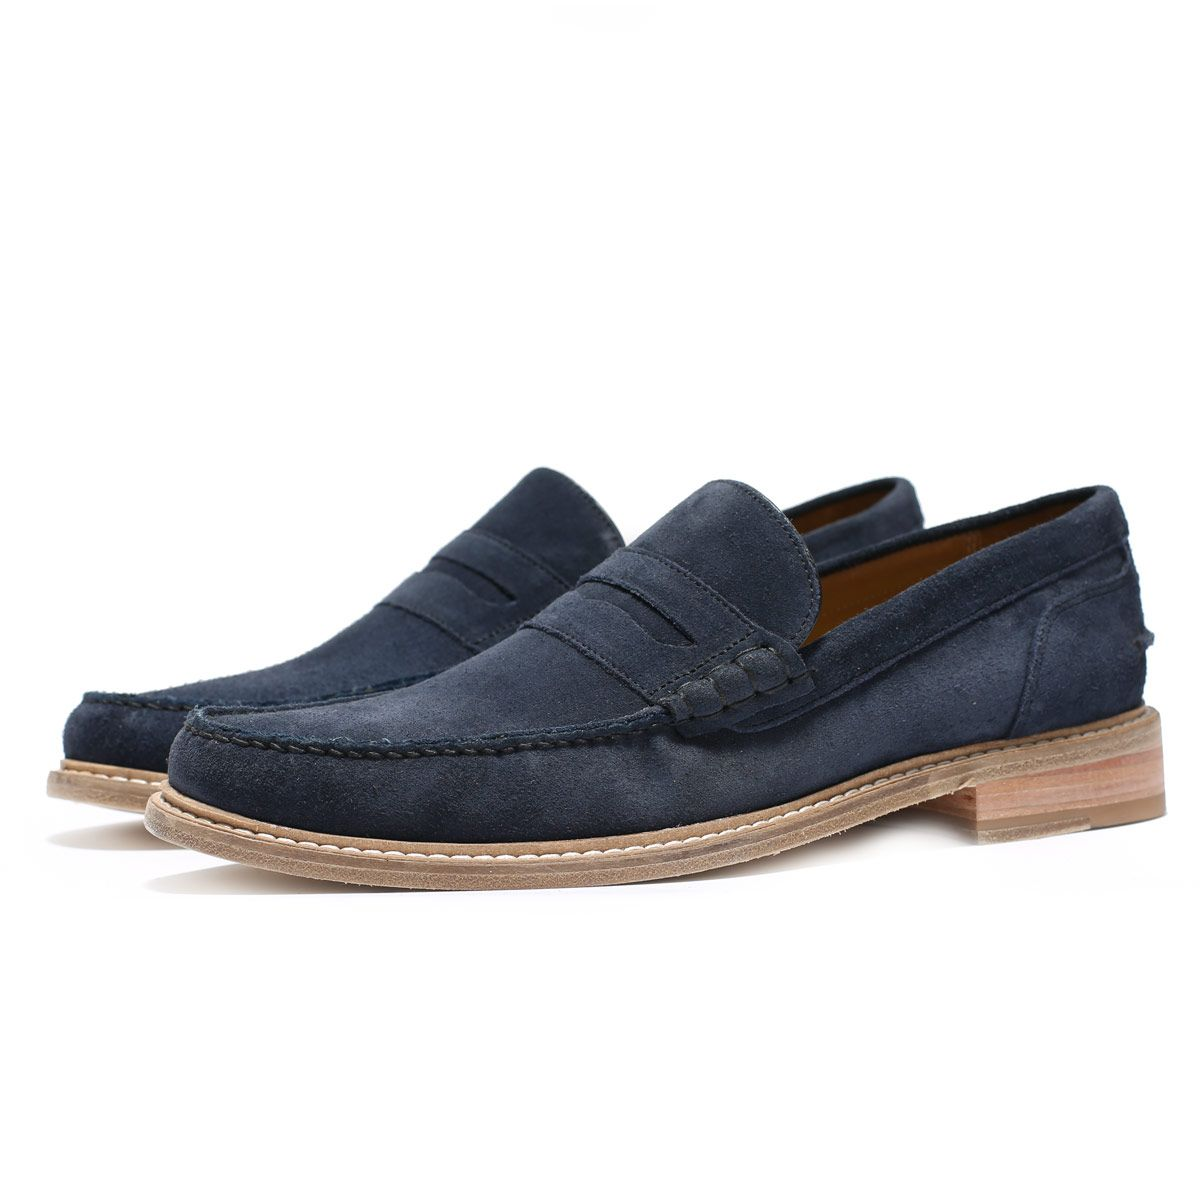 Oliver Sweeney Leiston Navy - Suede Penny Loafer